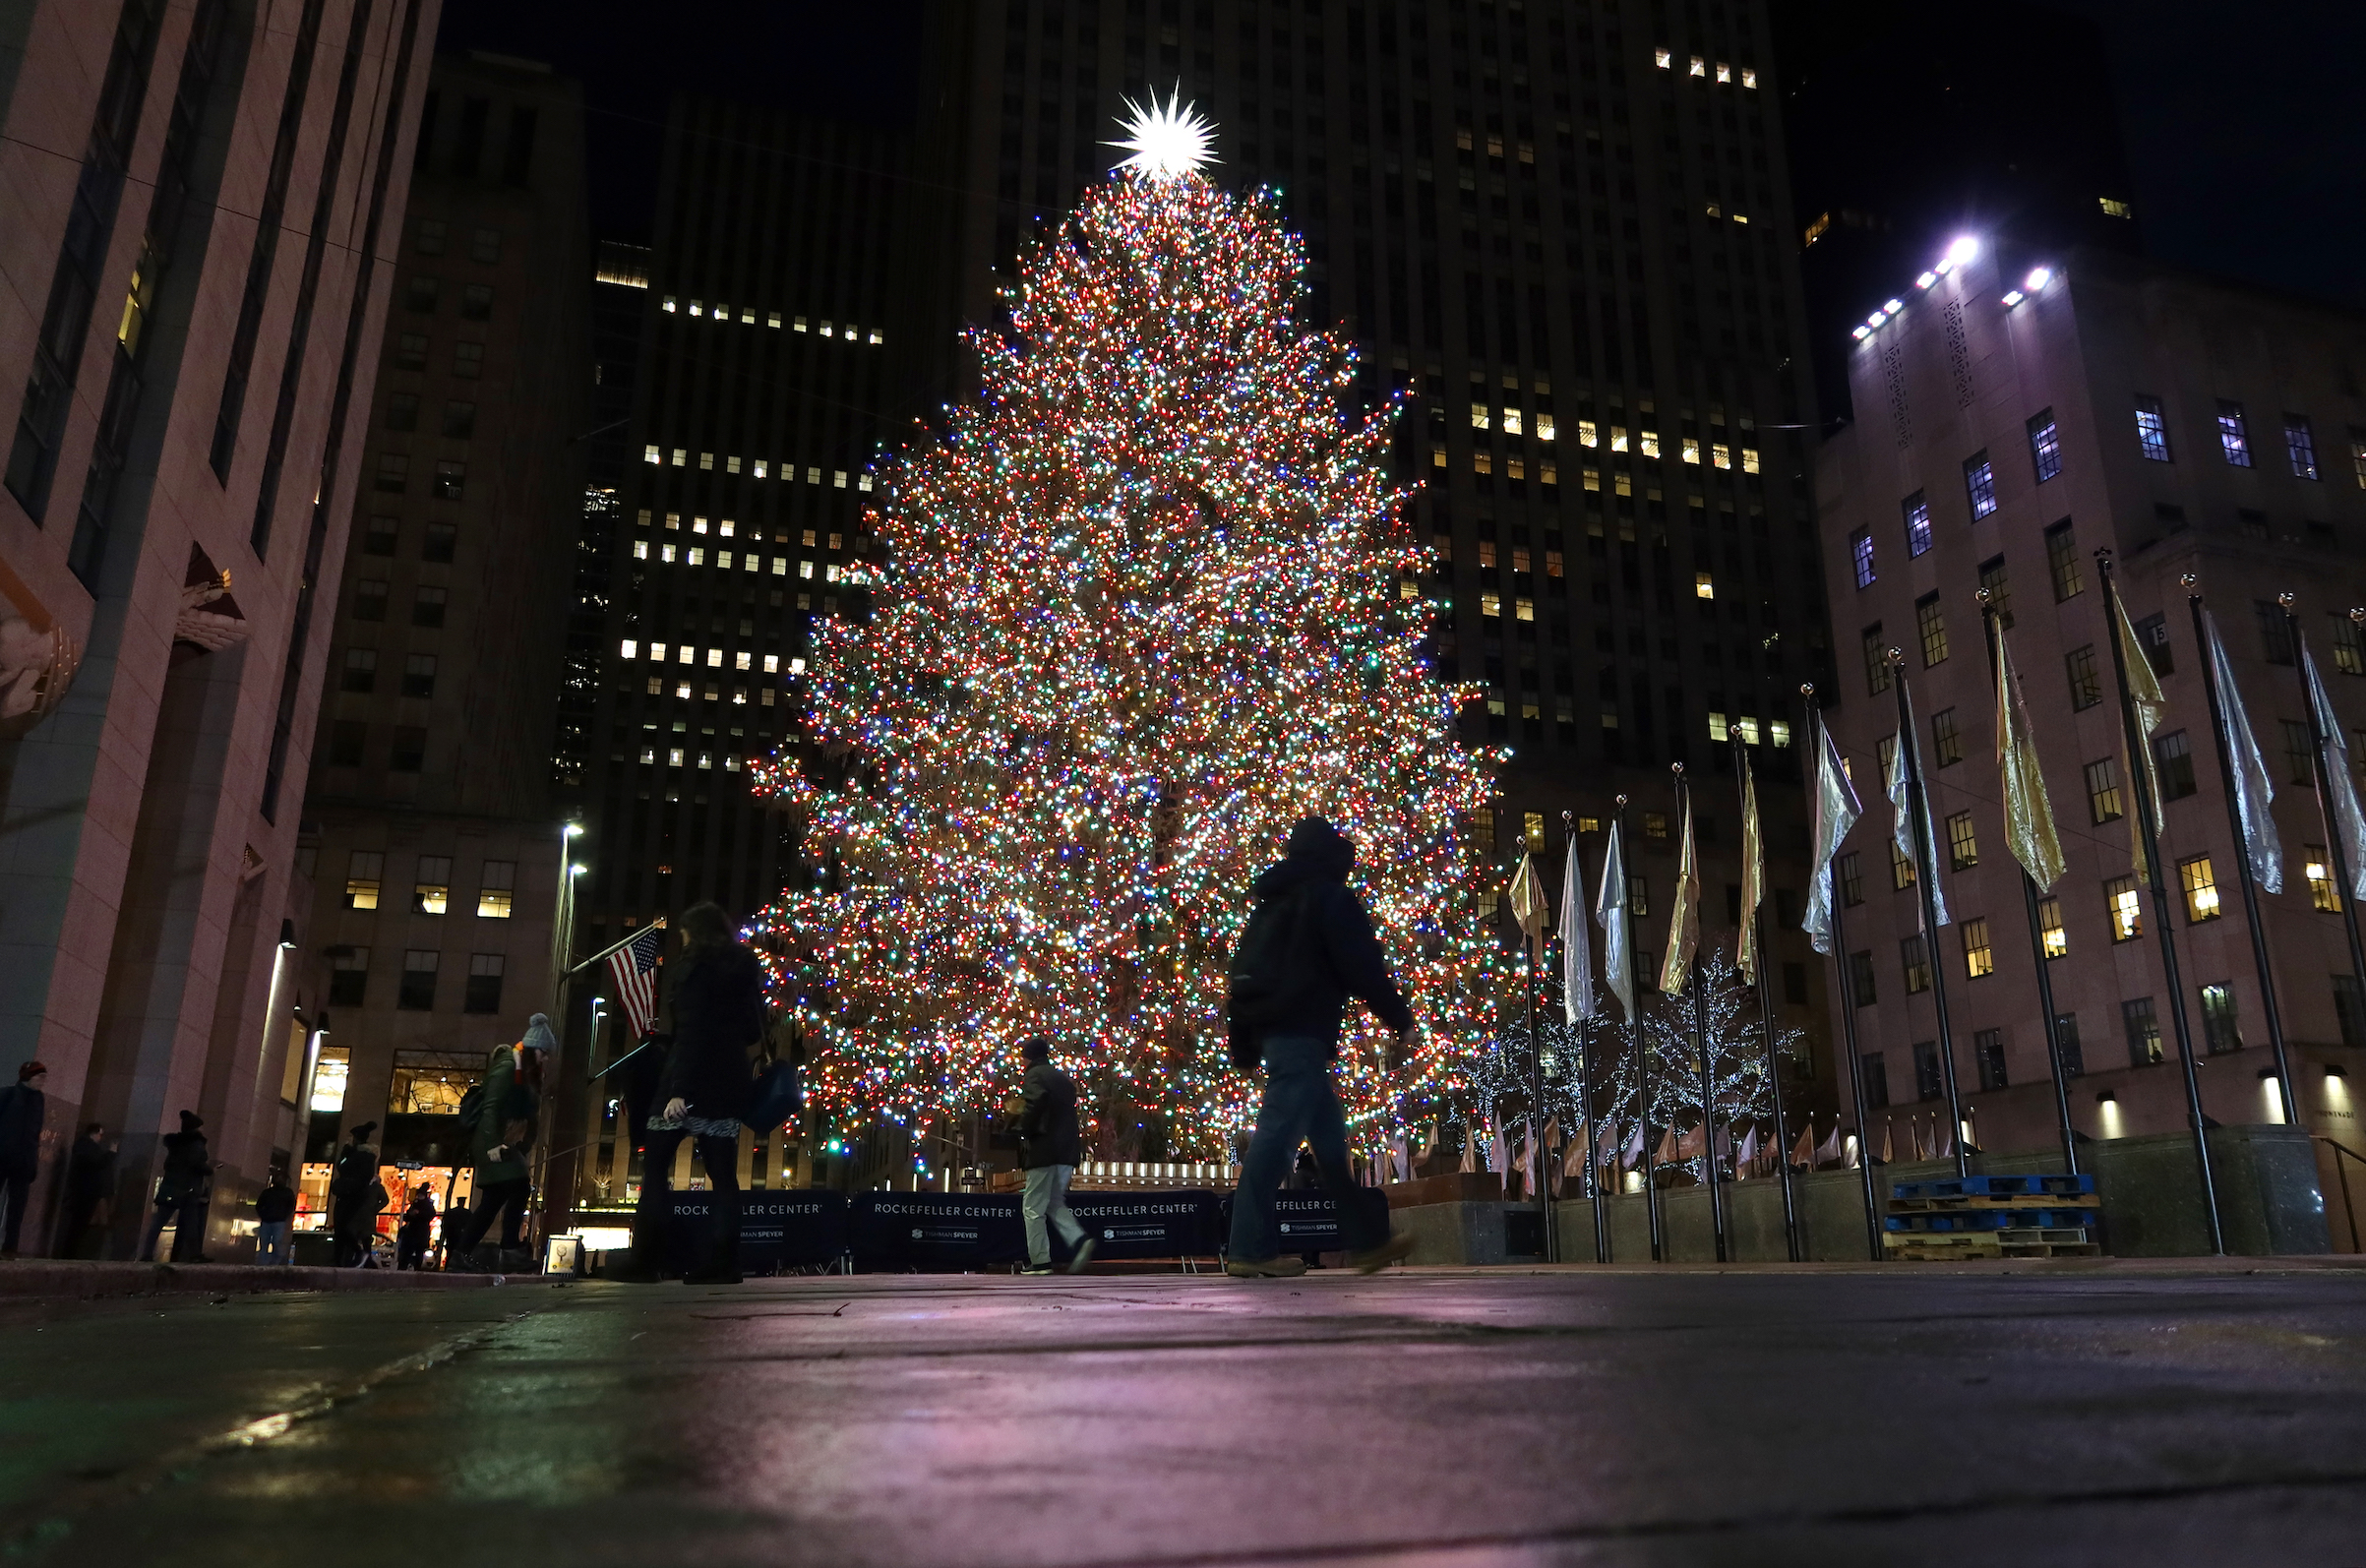 A man walks past the Christmas tree in Rockefeller Center before sunrise on Dec. 5, 2019, in New York City.